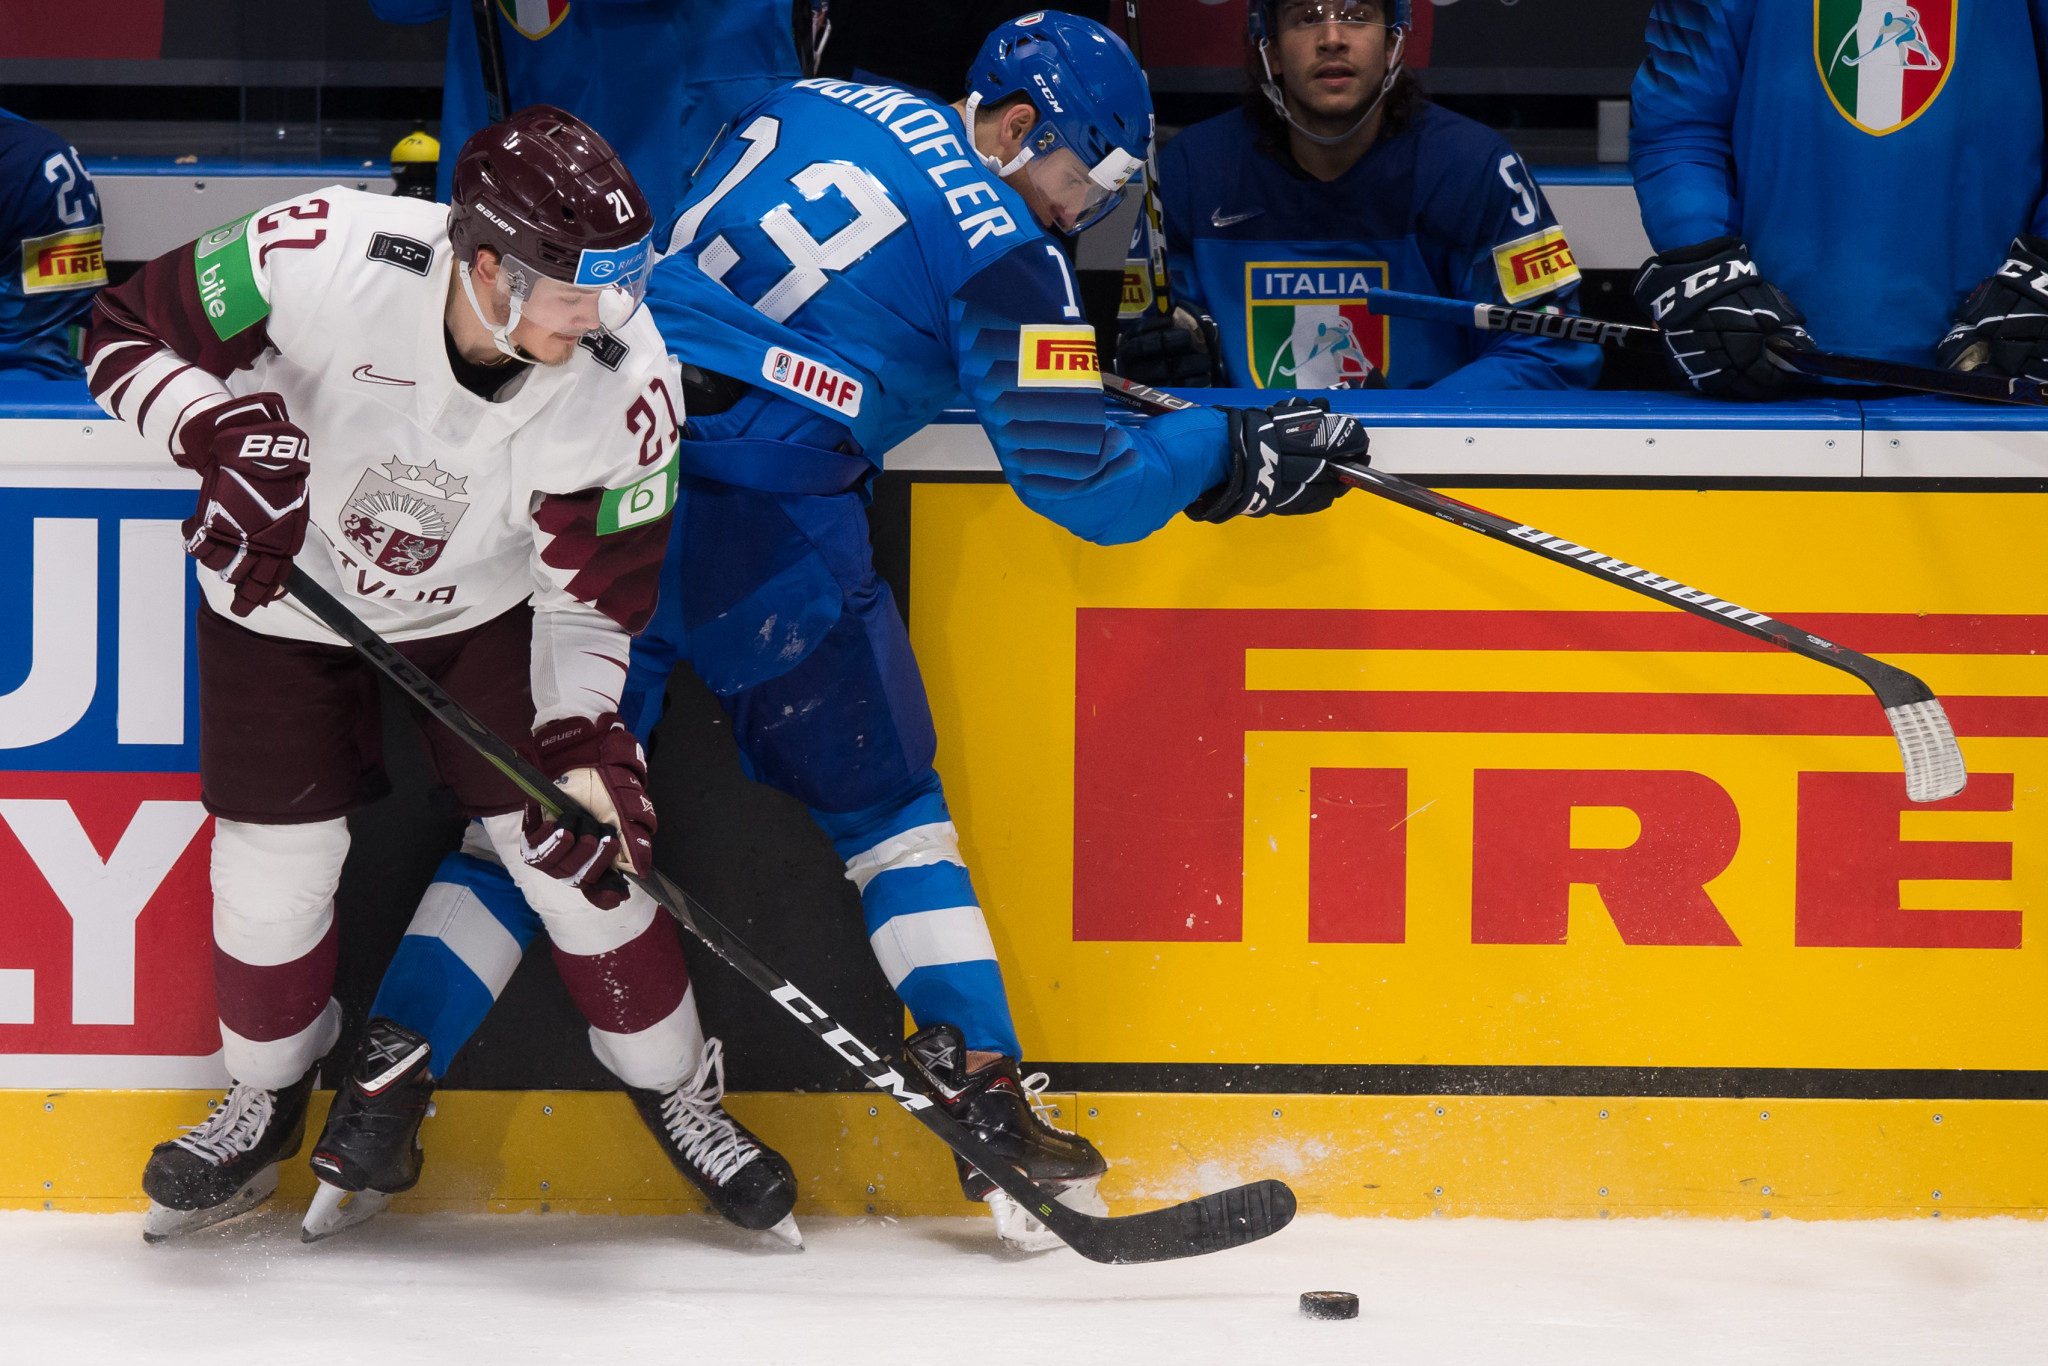 Latvia made it two wins from three matches in Group B by beating Italy 3-0 ©Getty Images